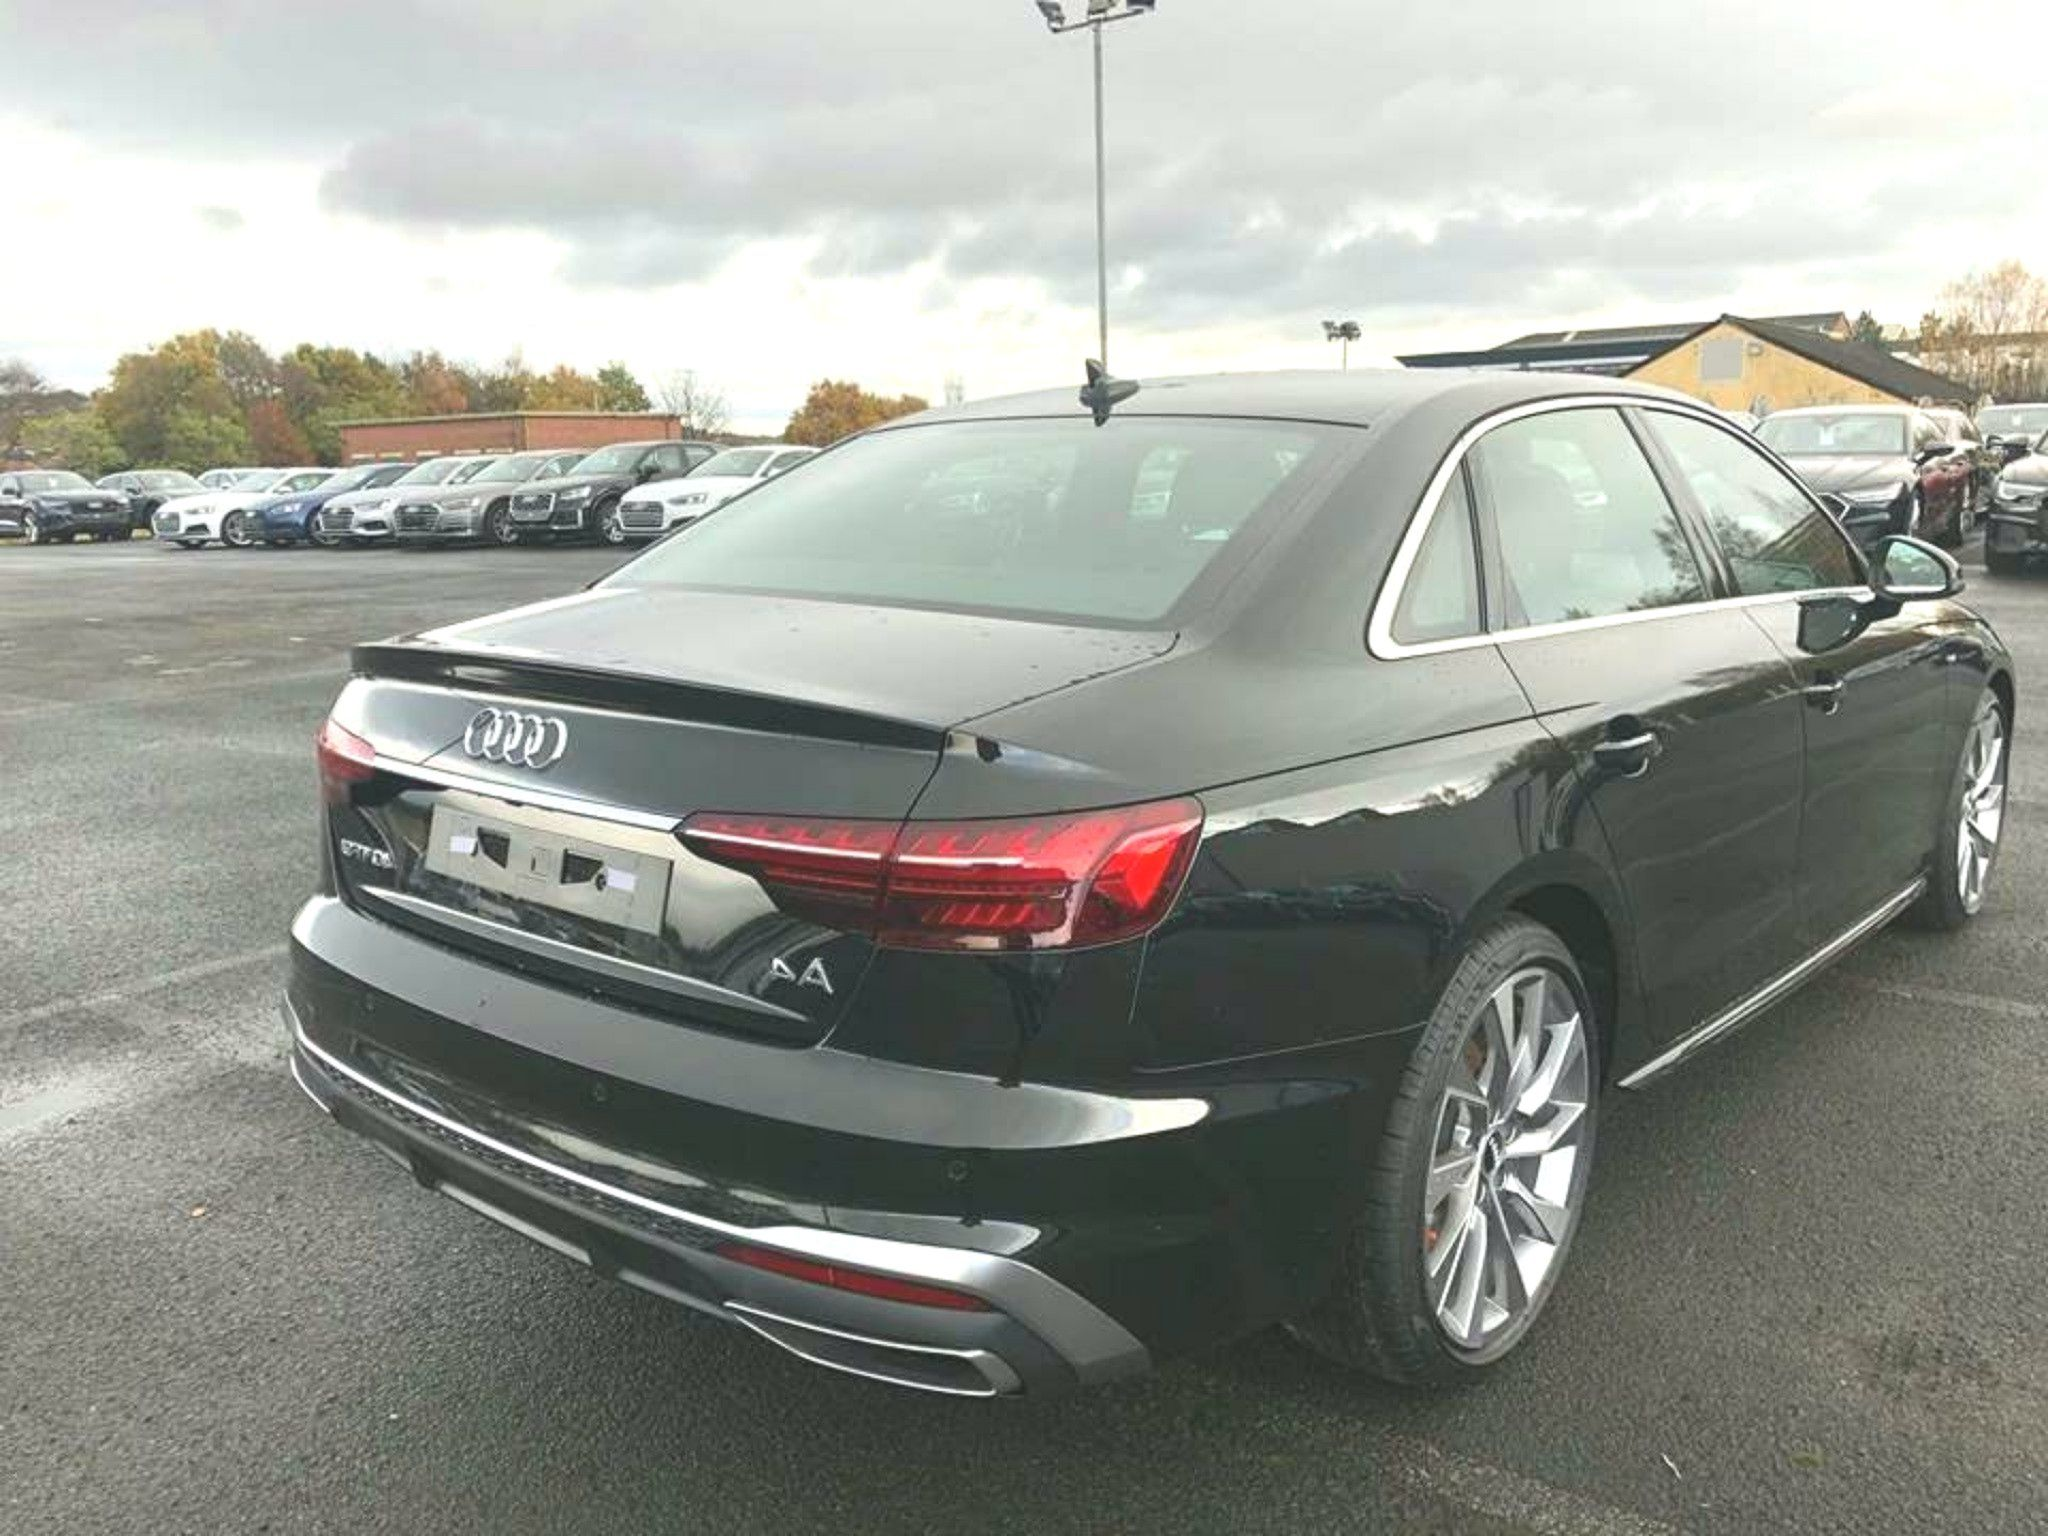 Audi A4 20 Tfsi 40 S Line S Tronic S S 4dr For Sale Audi A4 Audi Tuner Cars